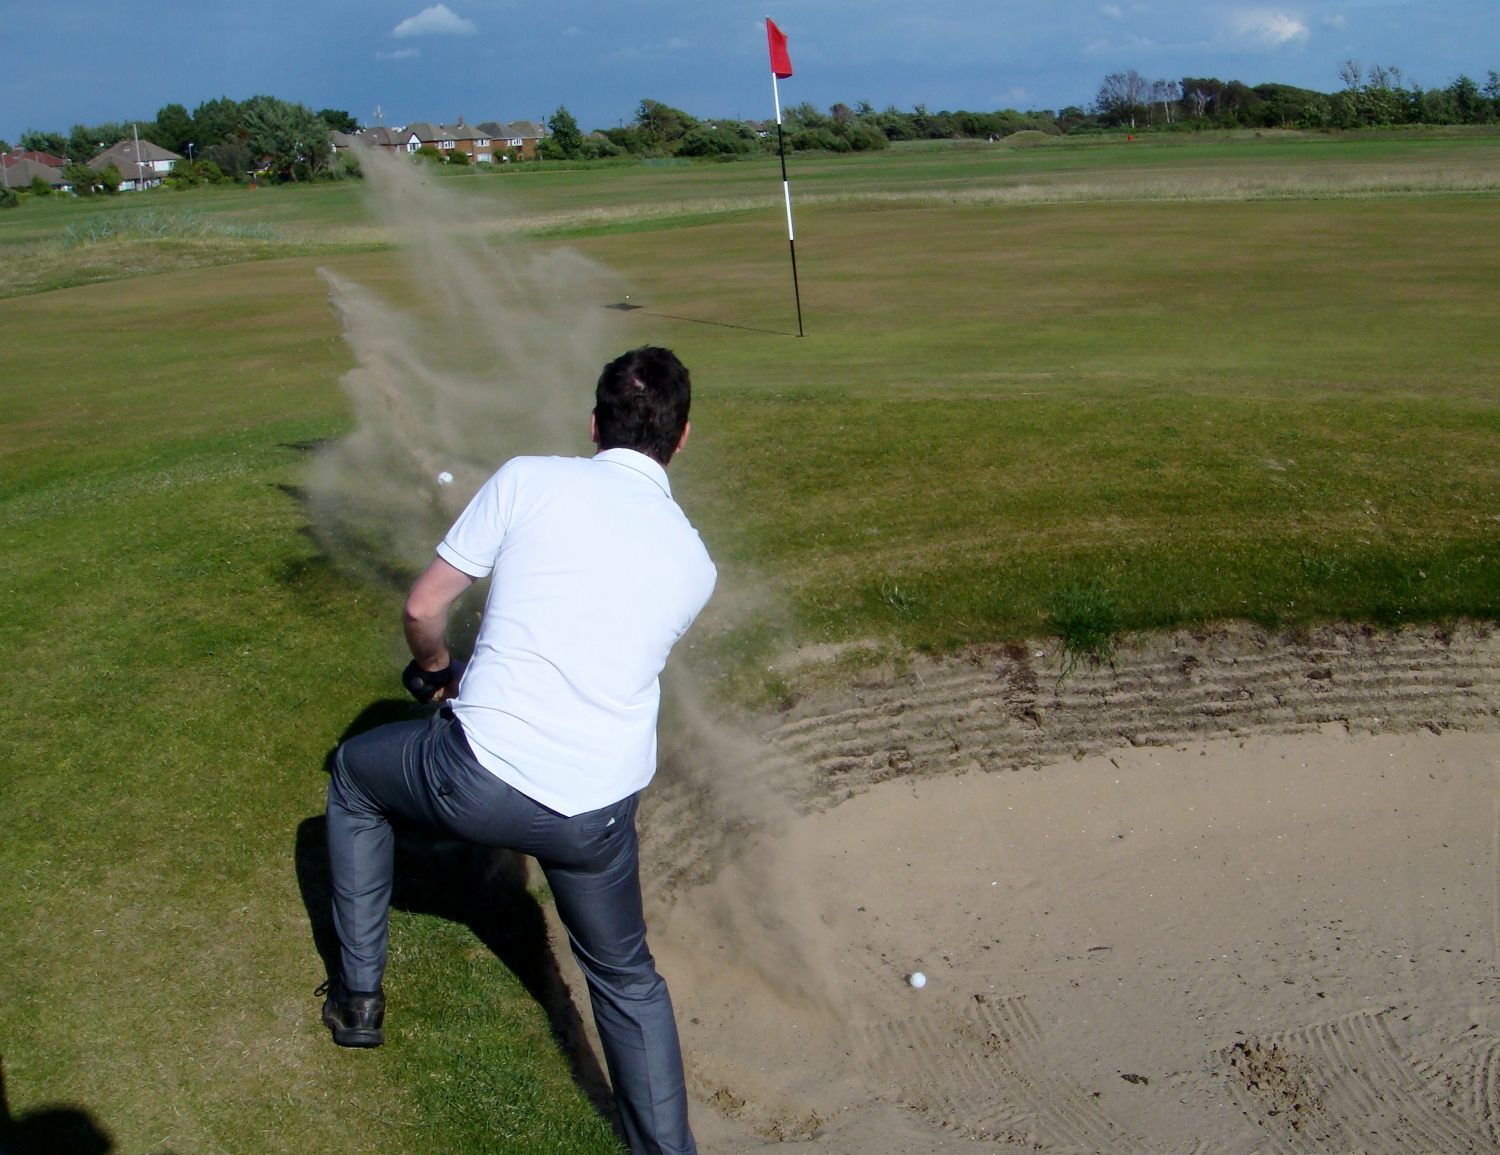 Lytham St Annes has hosted the Ryder Cup twice